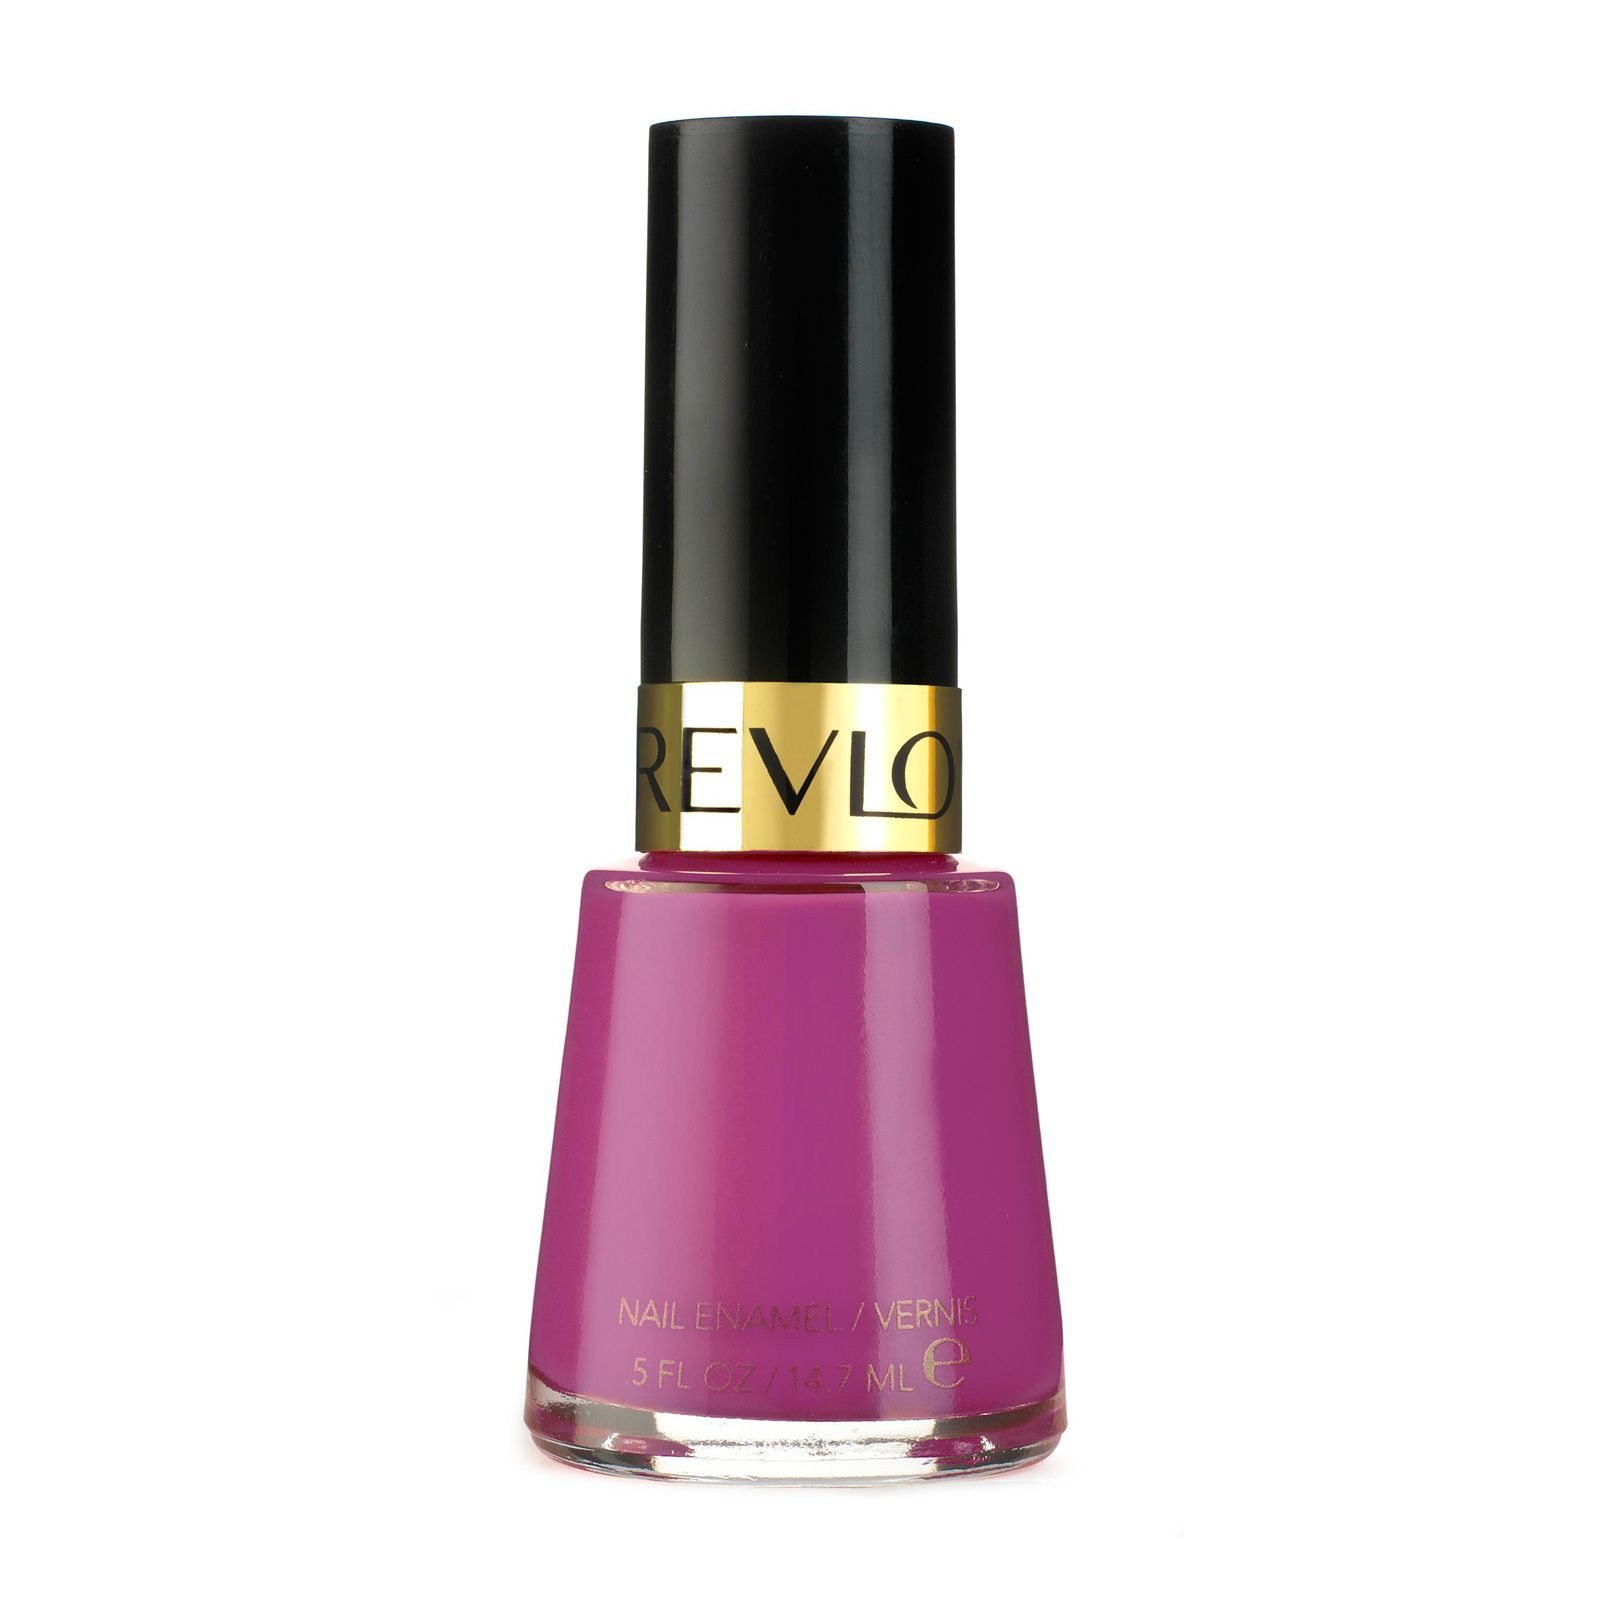 revlon vernis ongles couleurs 097 plum seduction rose indien brandalley. Black Bedroom Furniture Sets. Home Design Ideas